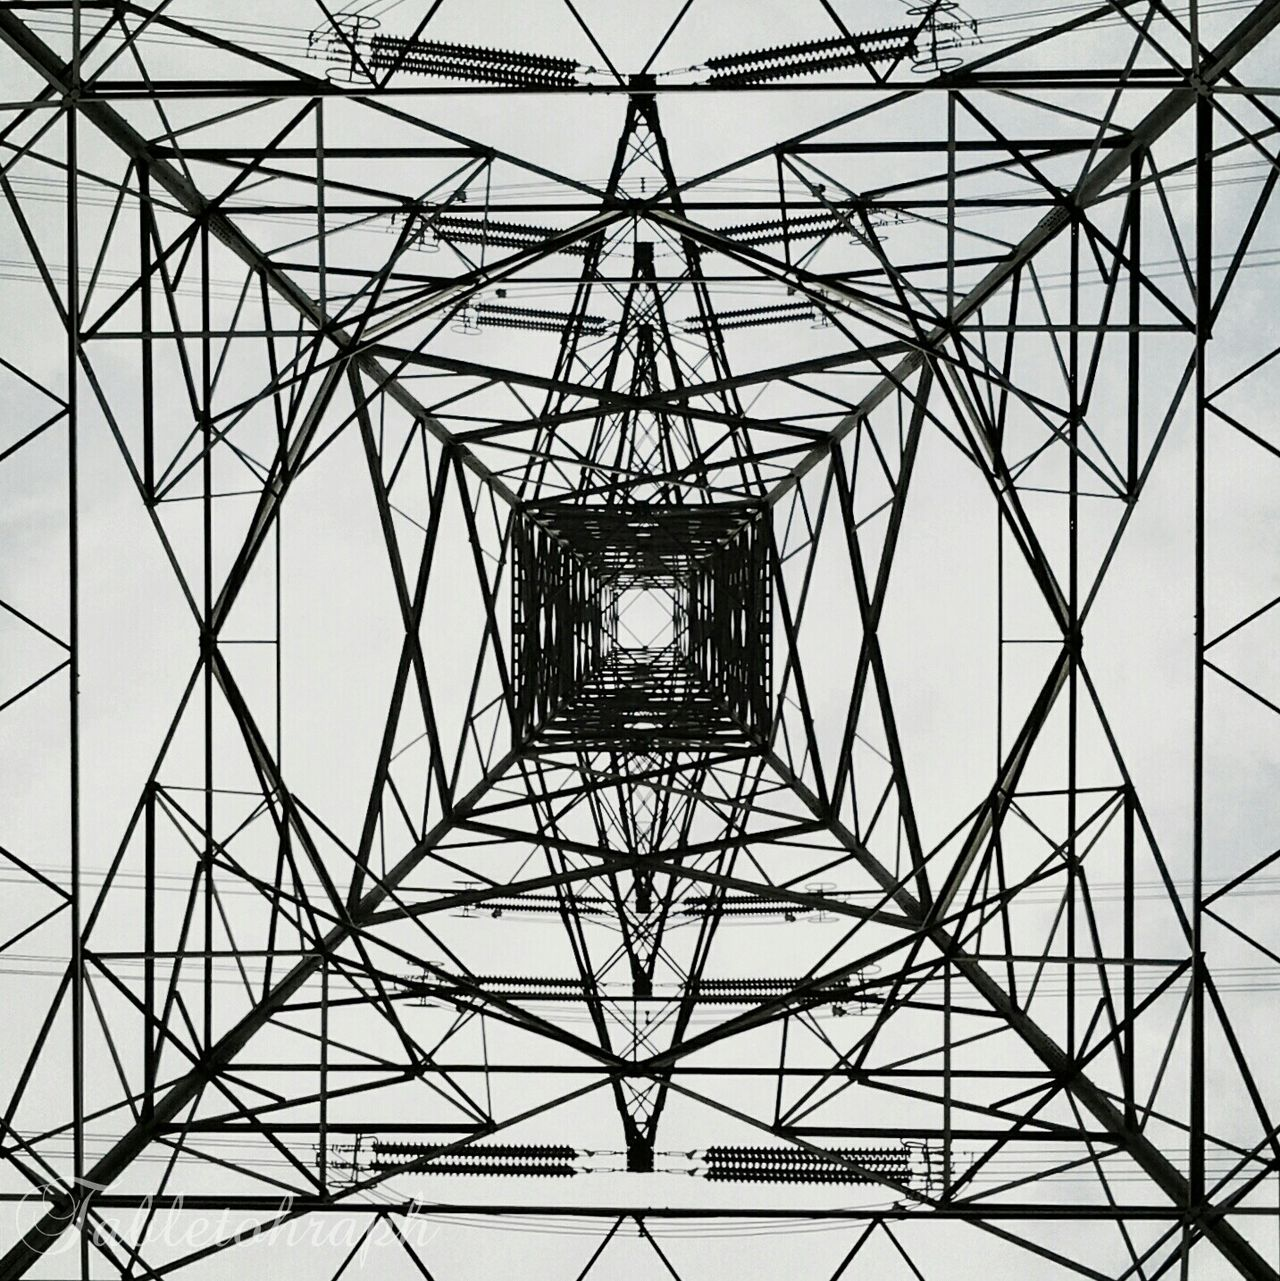 Complexity,  Connection,  Day,  Directly Below,  Fuel And Power Generation